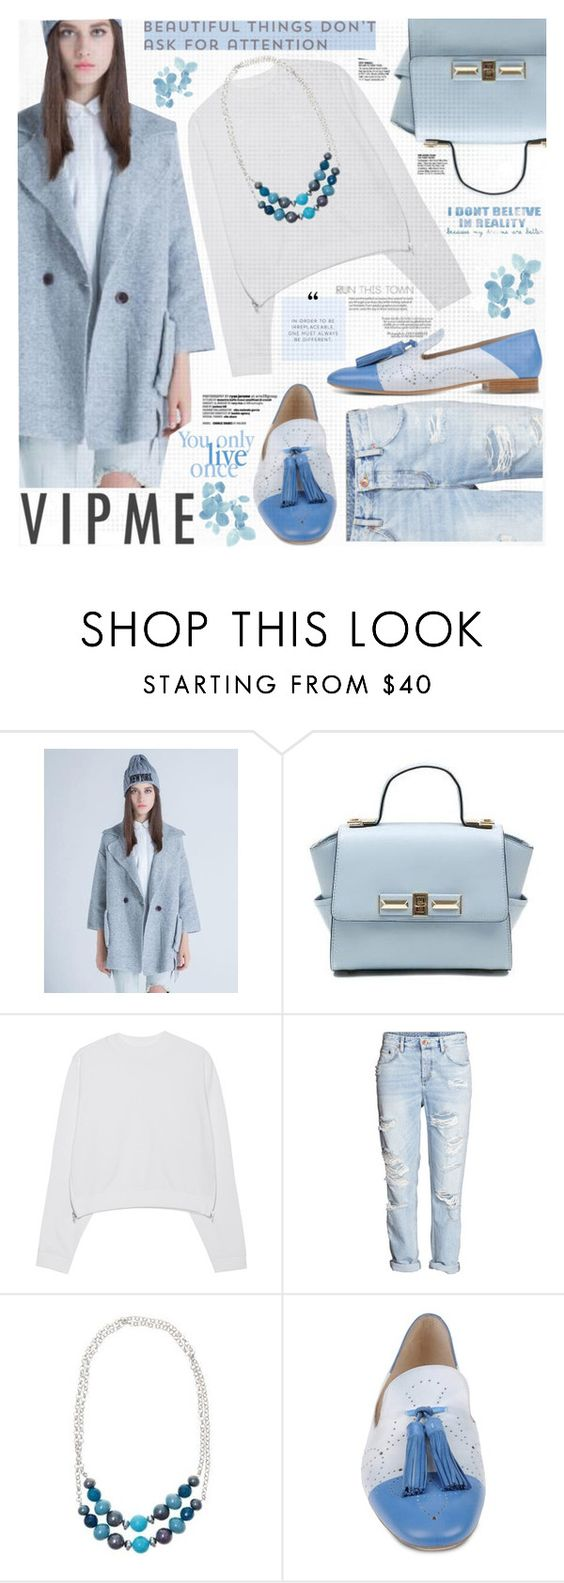 """VipMe 2"" by katjuncica ❤ liked on Polyvore featuring moda, Acne Studios, H&M, Fratelli Rossetti, women's clothing, women, female, woman, misses y juniors"